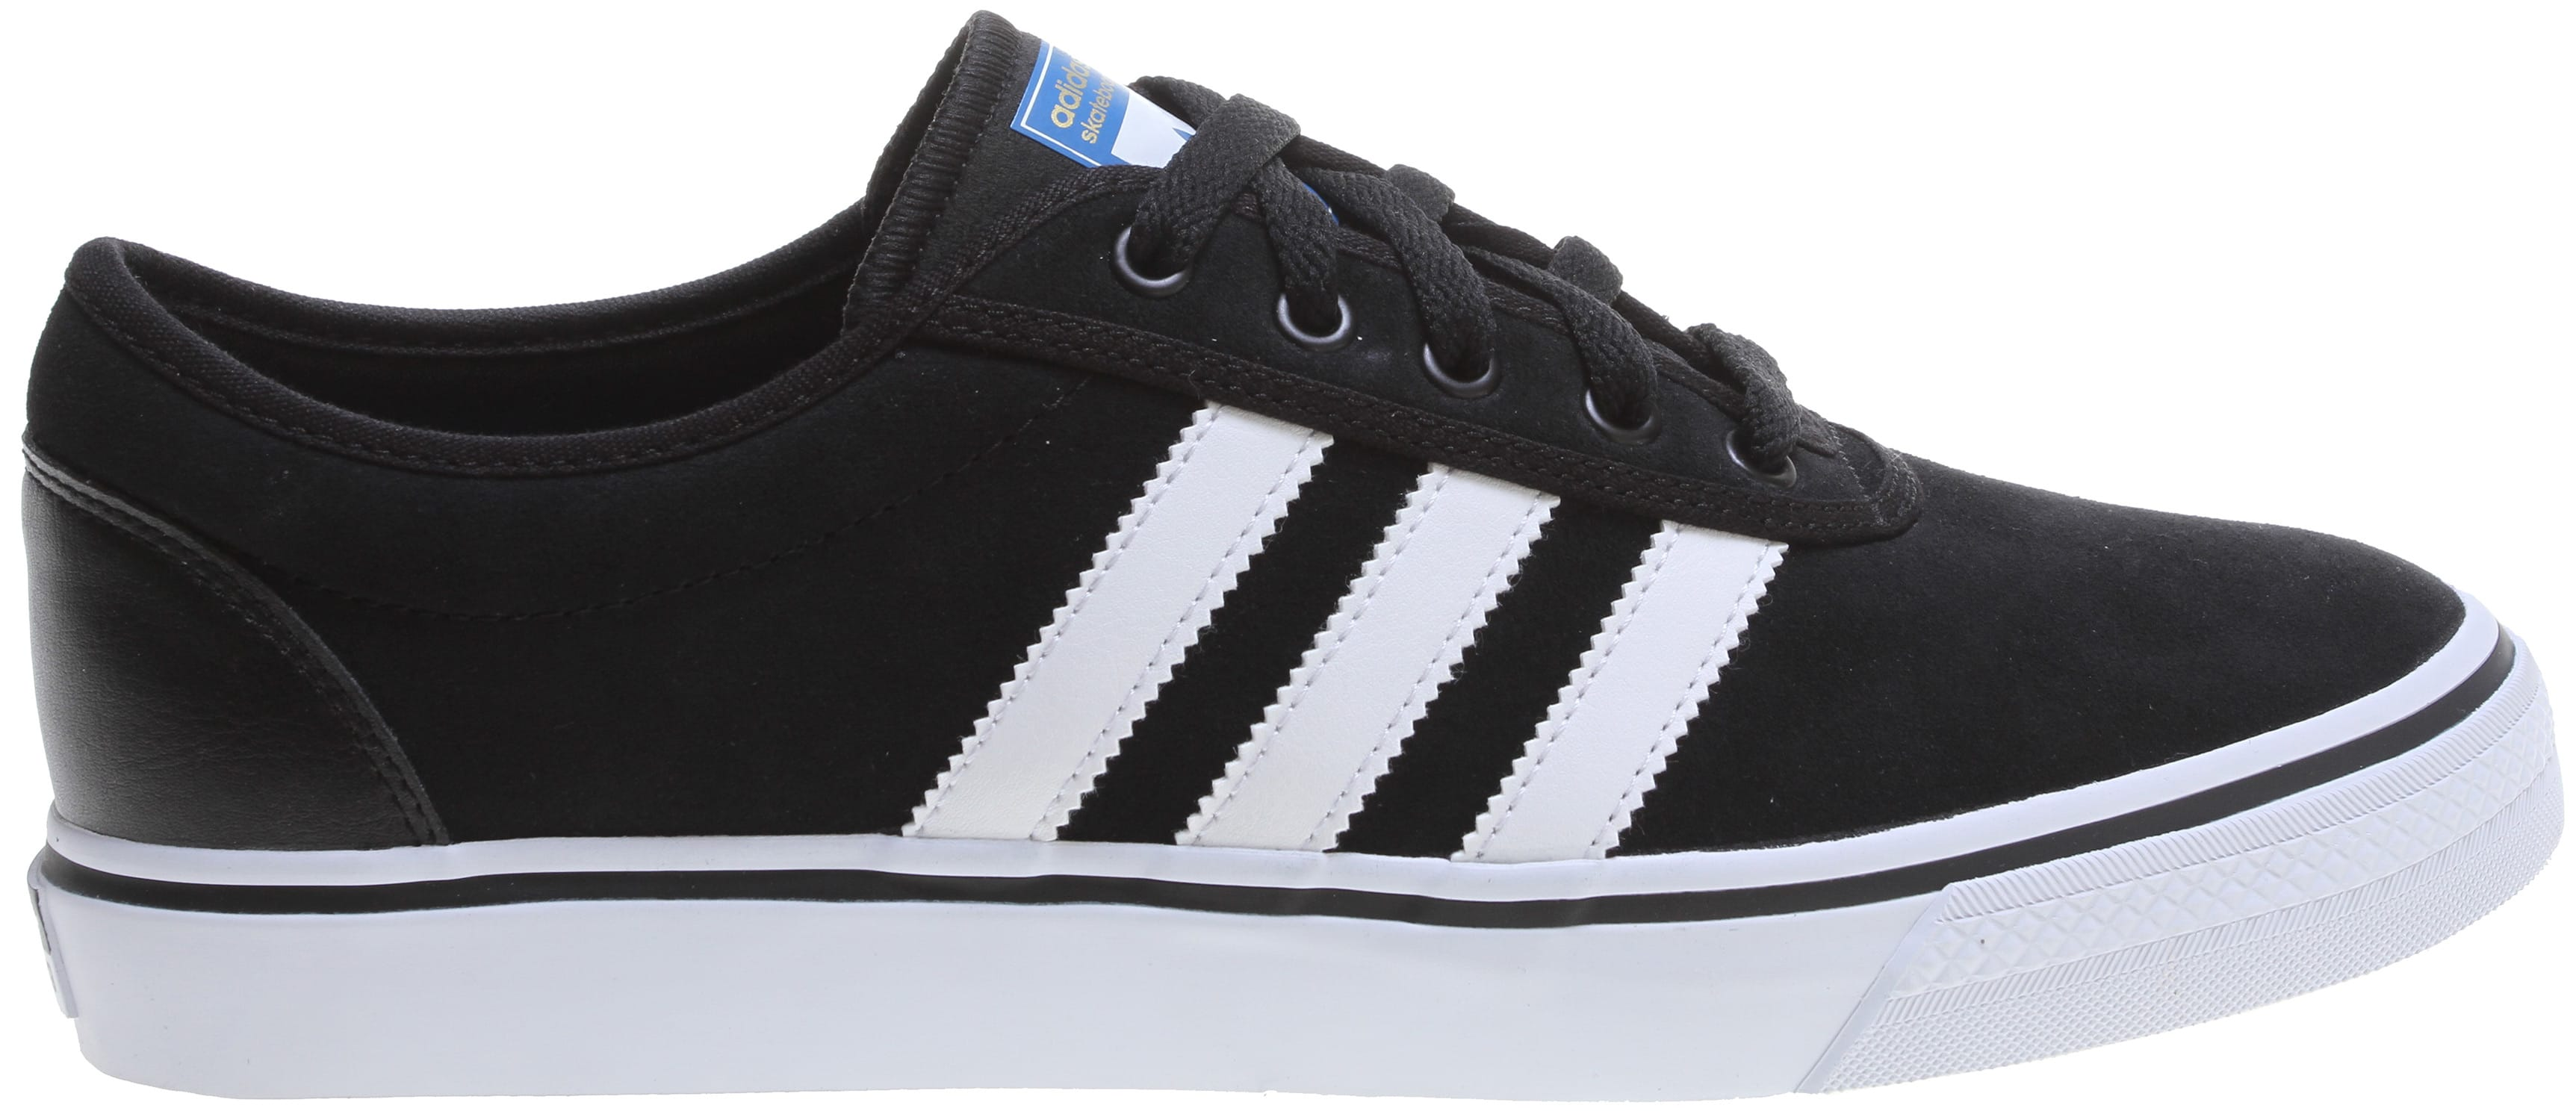 quality design b1a5b 594d4 ... cheapest adidas adi ease pro skate shoes thumbnail 1 26430 a85d6